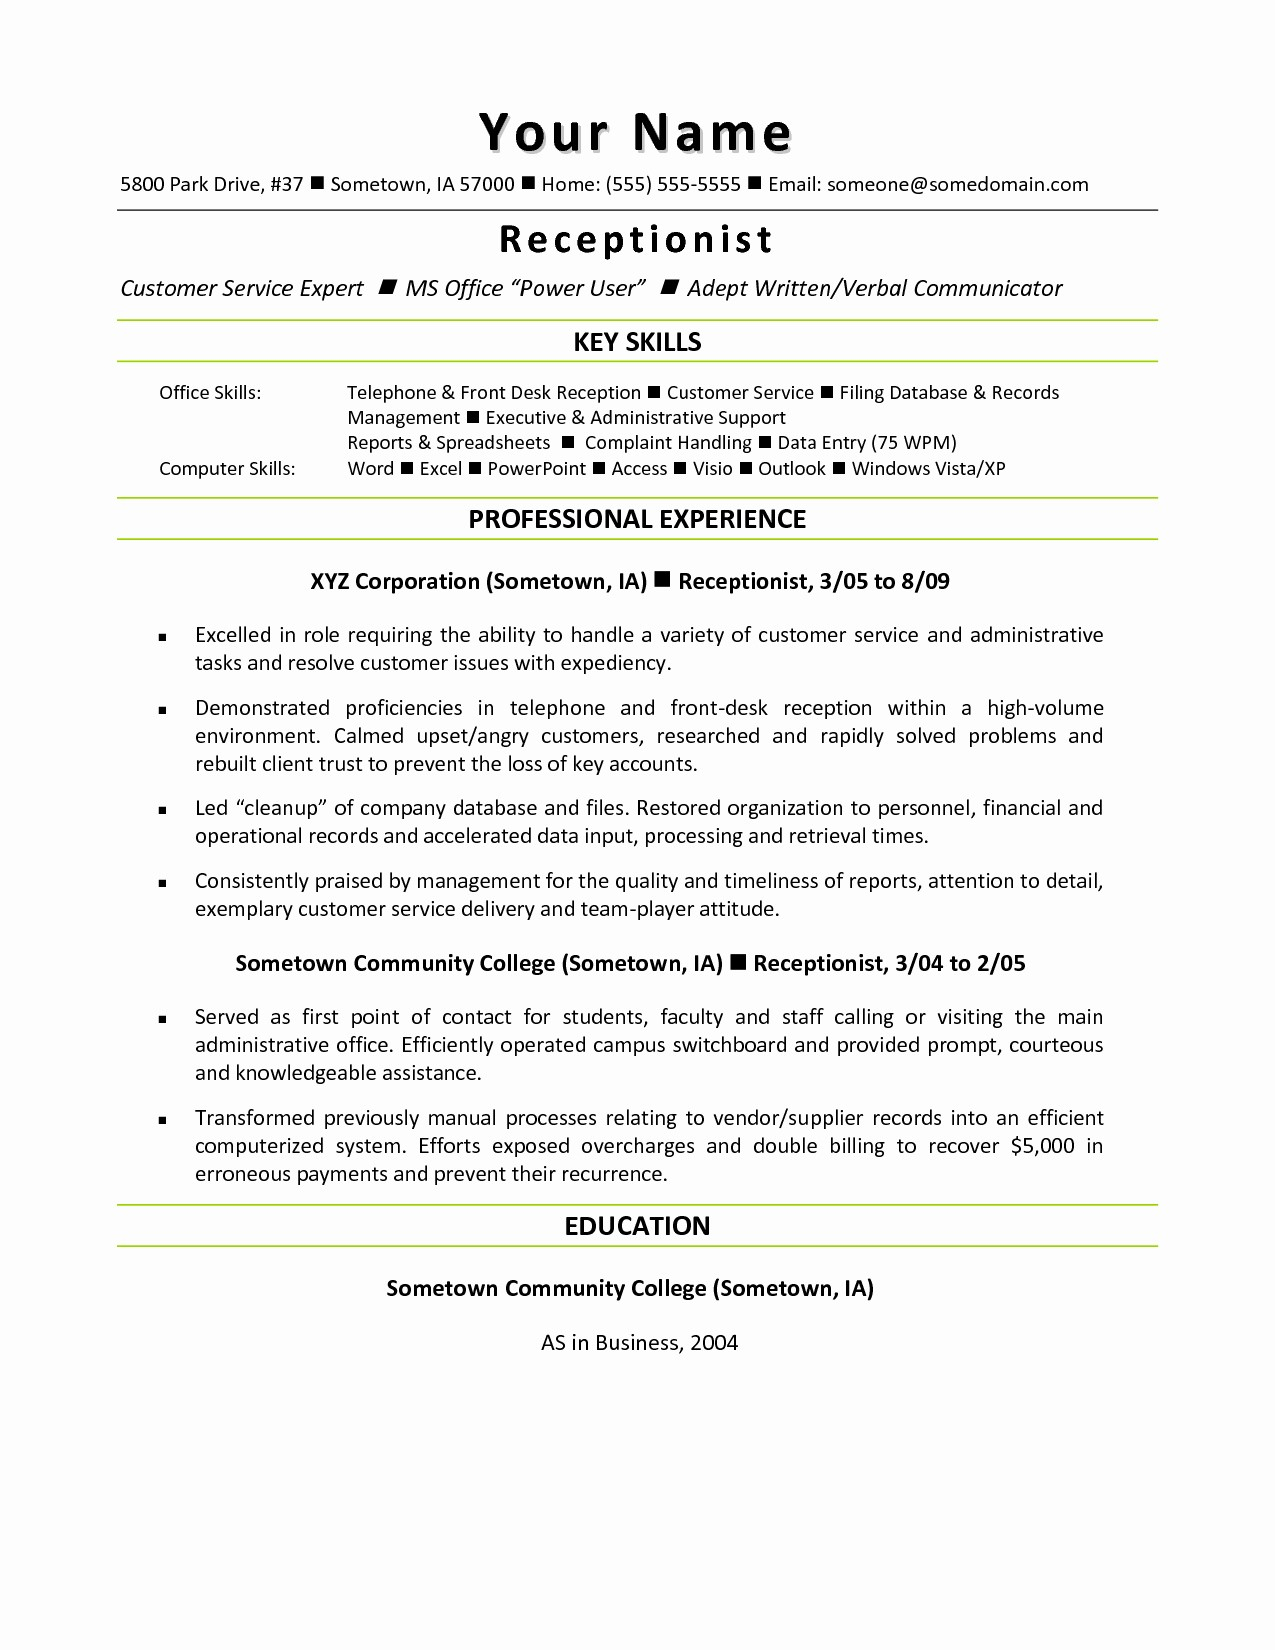 Cover Letter Template for Medical Office assistant - Sample Cover Letter for An Administrative assistant Position